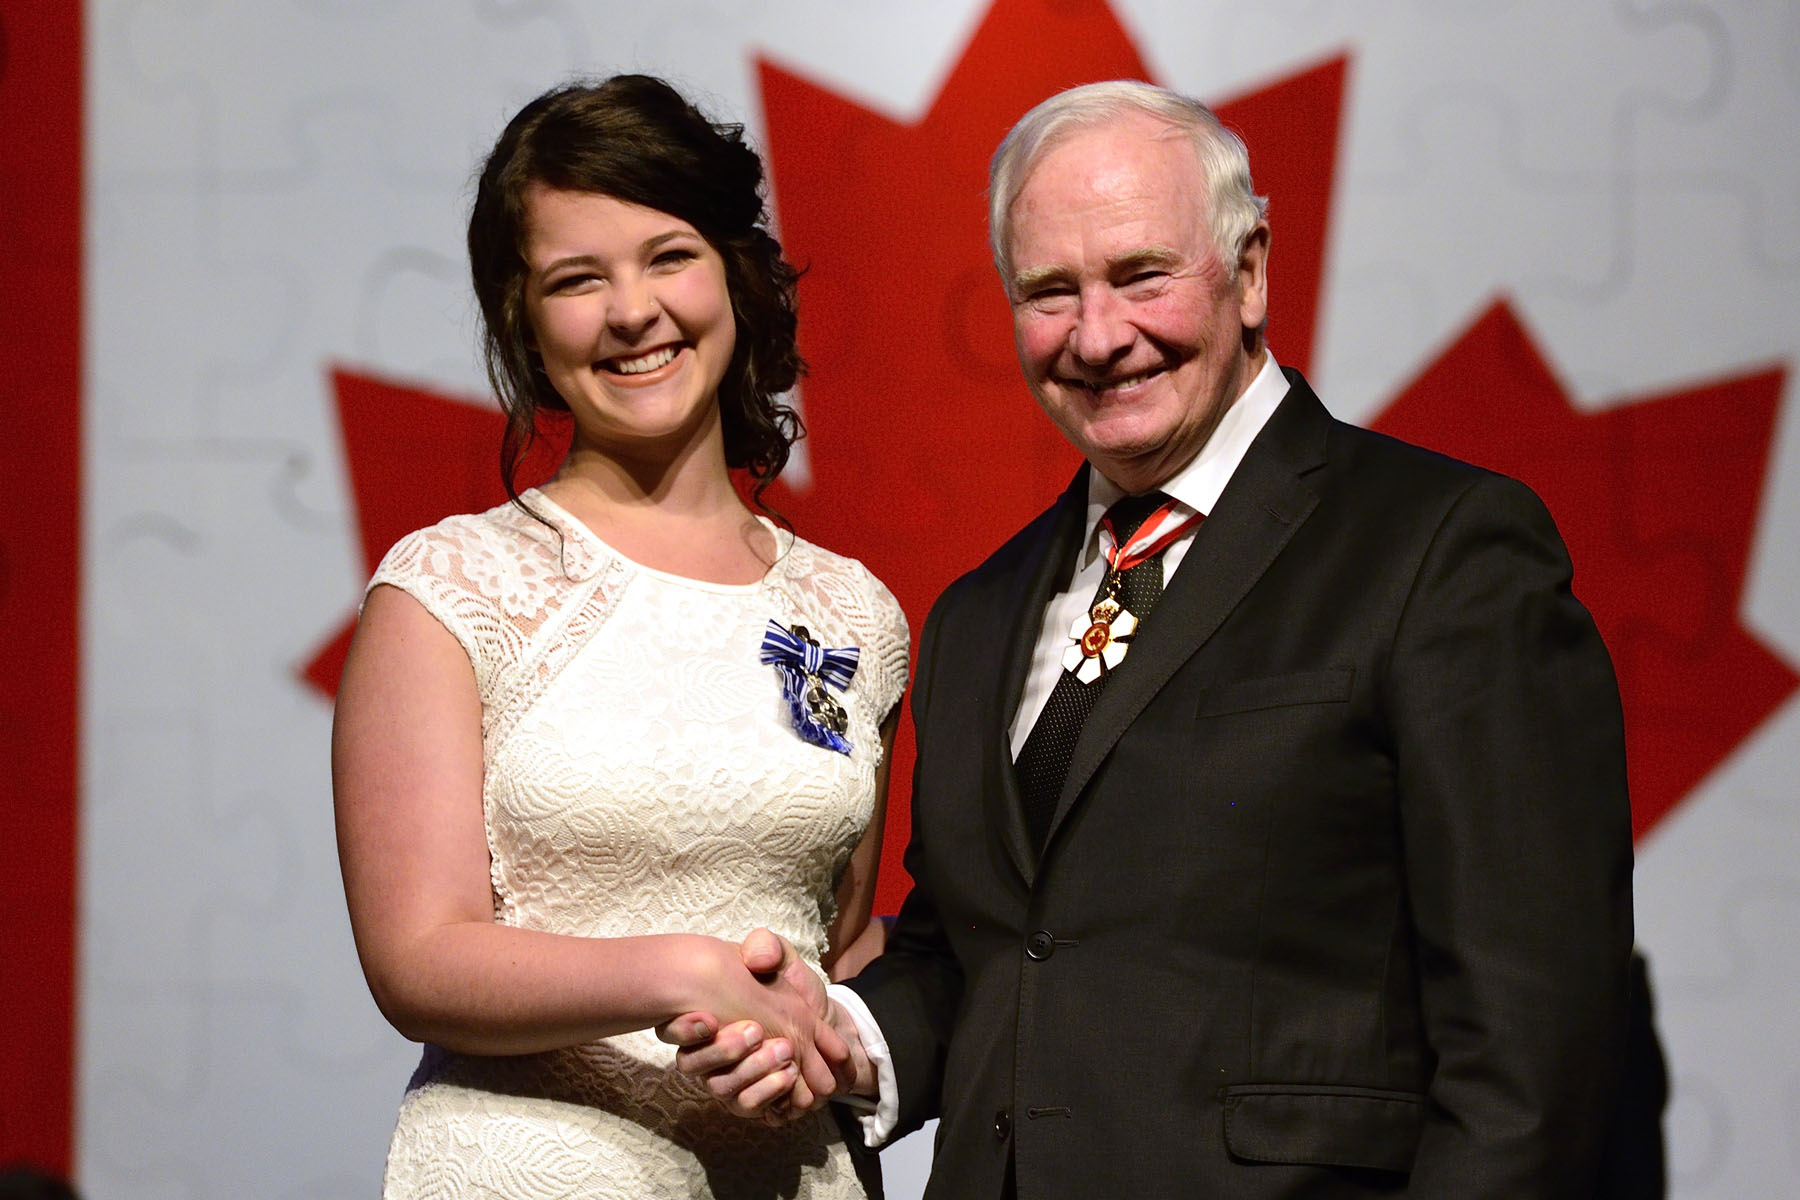 The Meritorious Service Medal (Civil Division) was presented to Maike van Niekerk, M.S.M. Determined to create a legacy for her mother who died of breast cancer, Ms. van Niekerk created Katrin's Karepackage, an organization that raises funds to offset rural cancer patients' travel costs to access care in Halifax and St. John's. She has cycled across Newfoundland and ran seven marathons in seven days to symbolize patients' long journeys to access treatment.